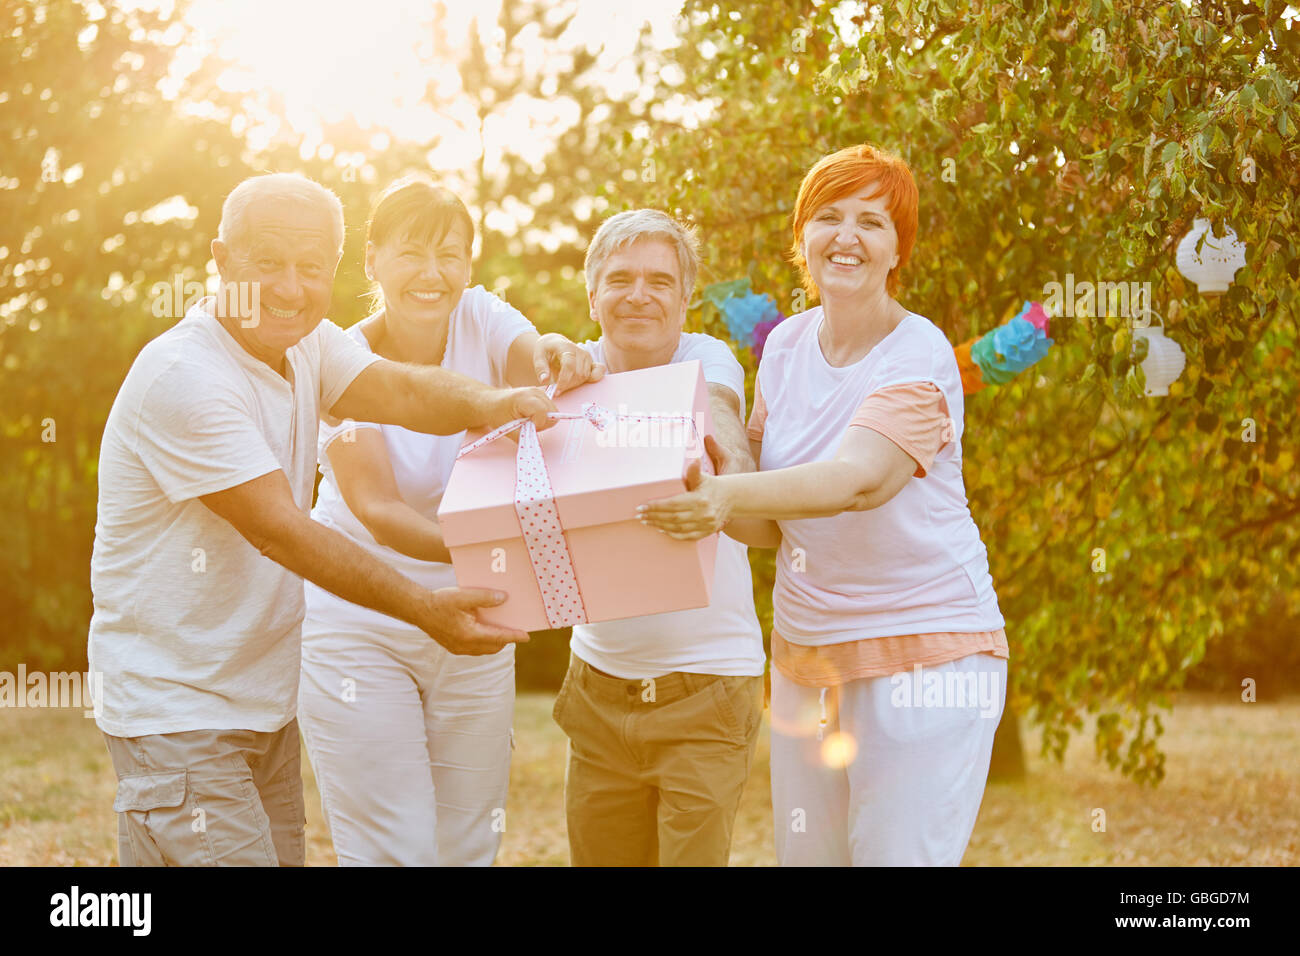 Group of seniors with gift at a summer party in a garden - Stock Image